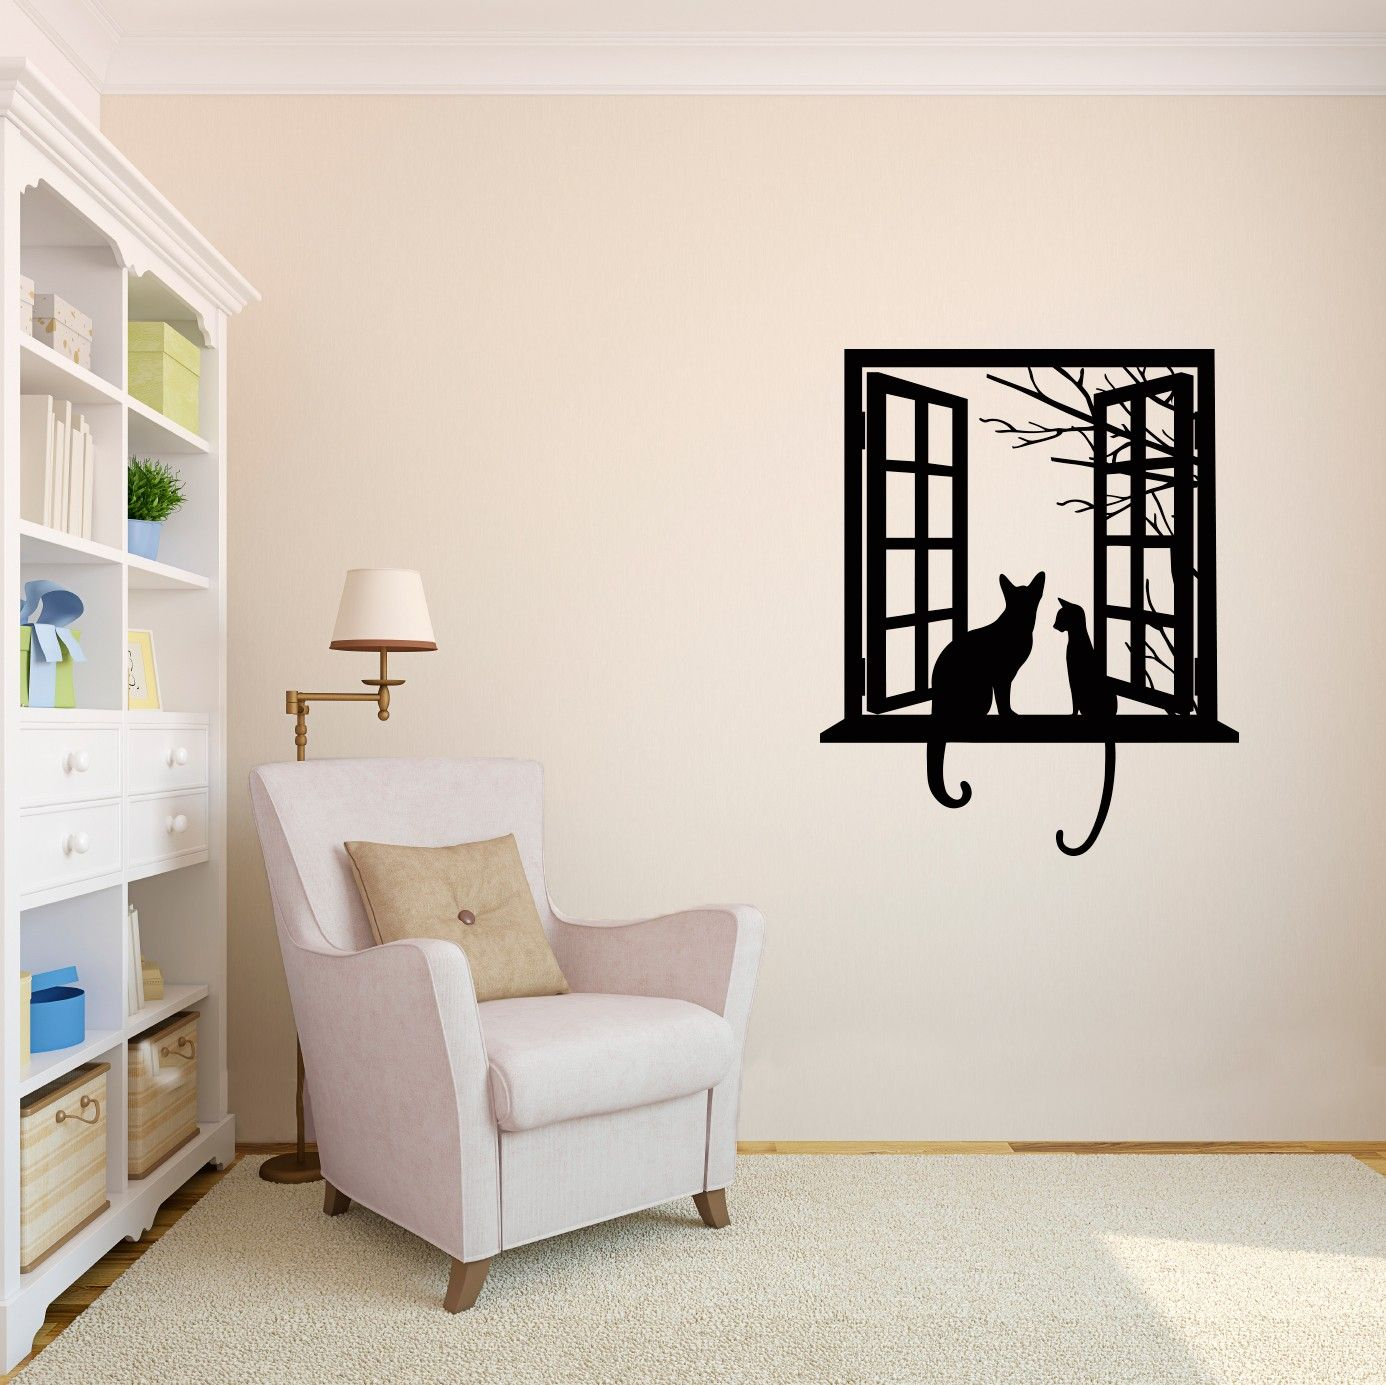 Cats Looking Through Window Silhouette Vinyl Wall Art Decal And - Custom vinyl wall decals cats